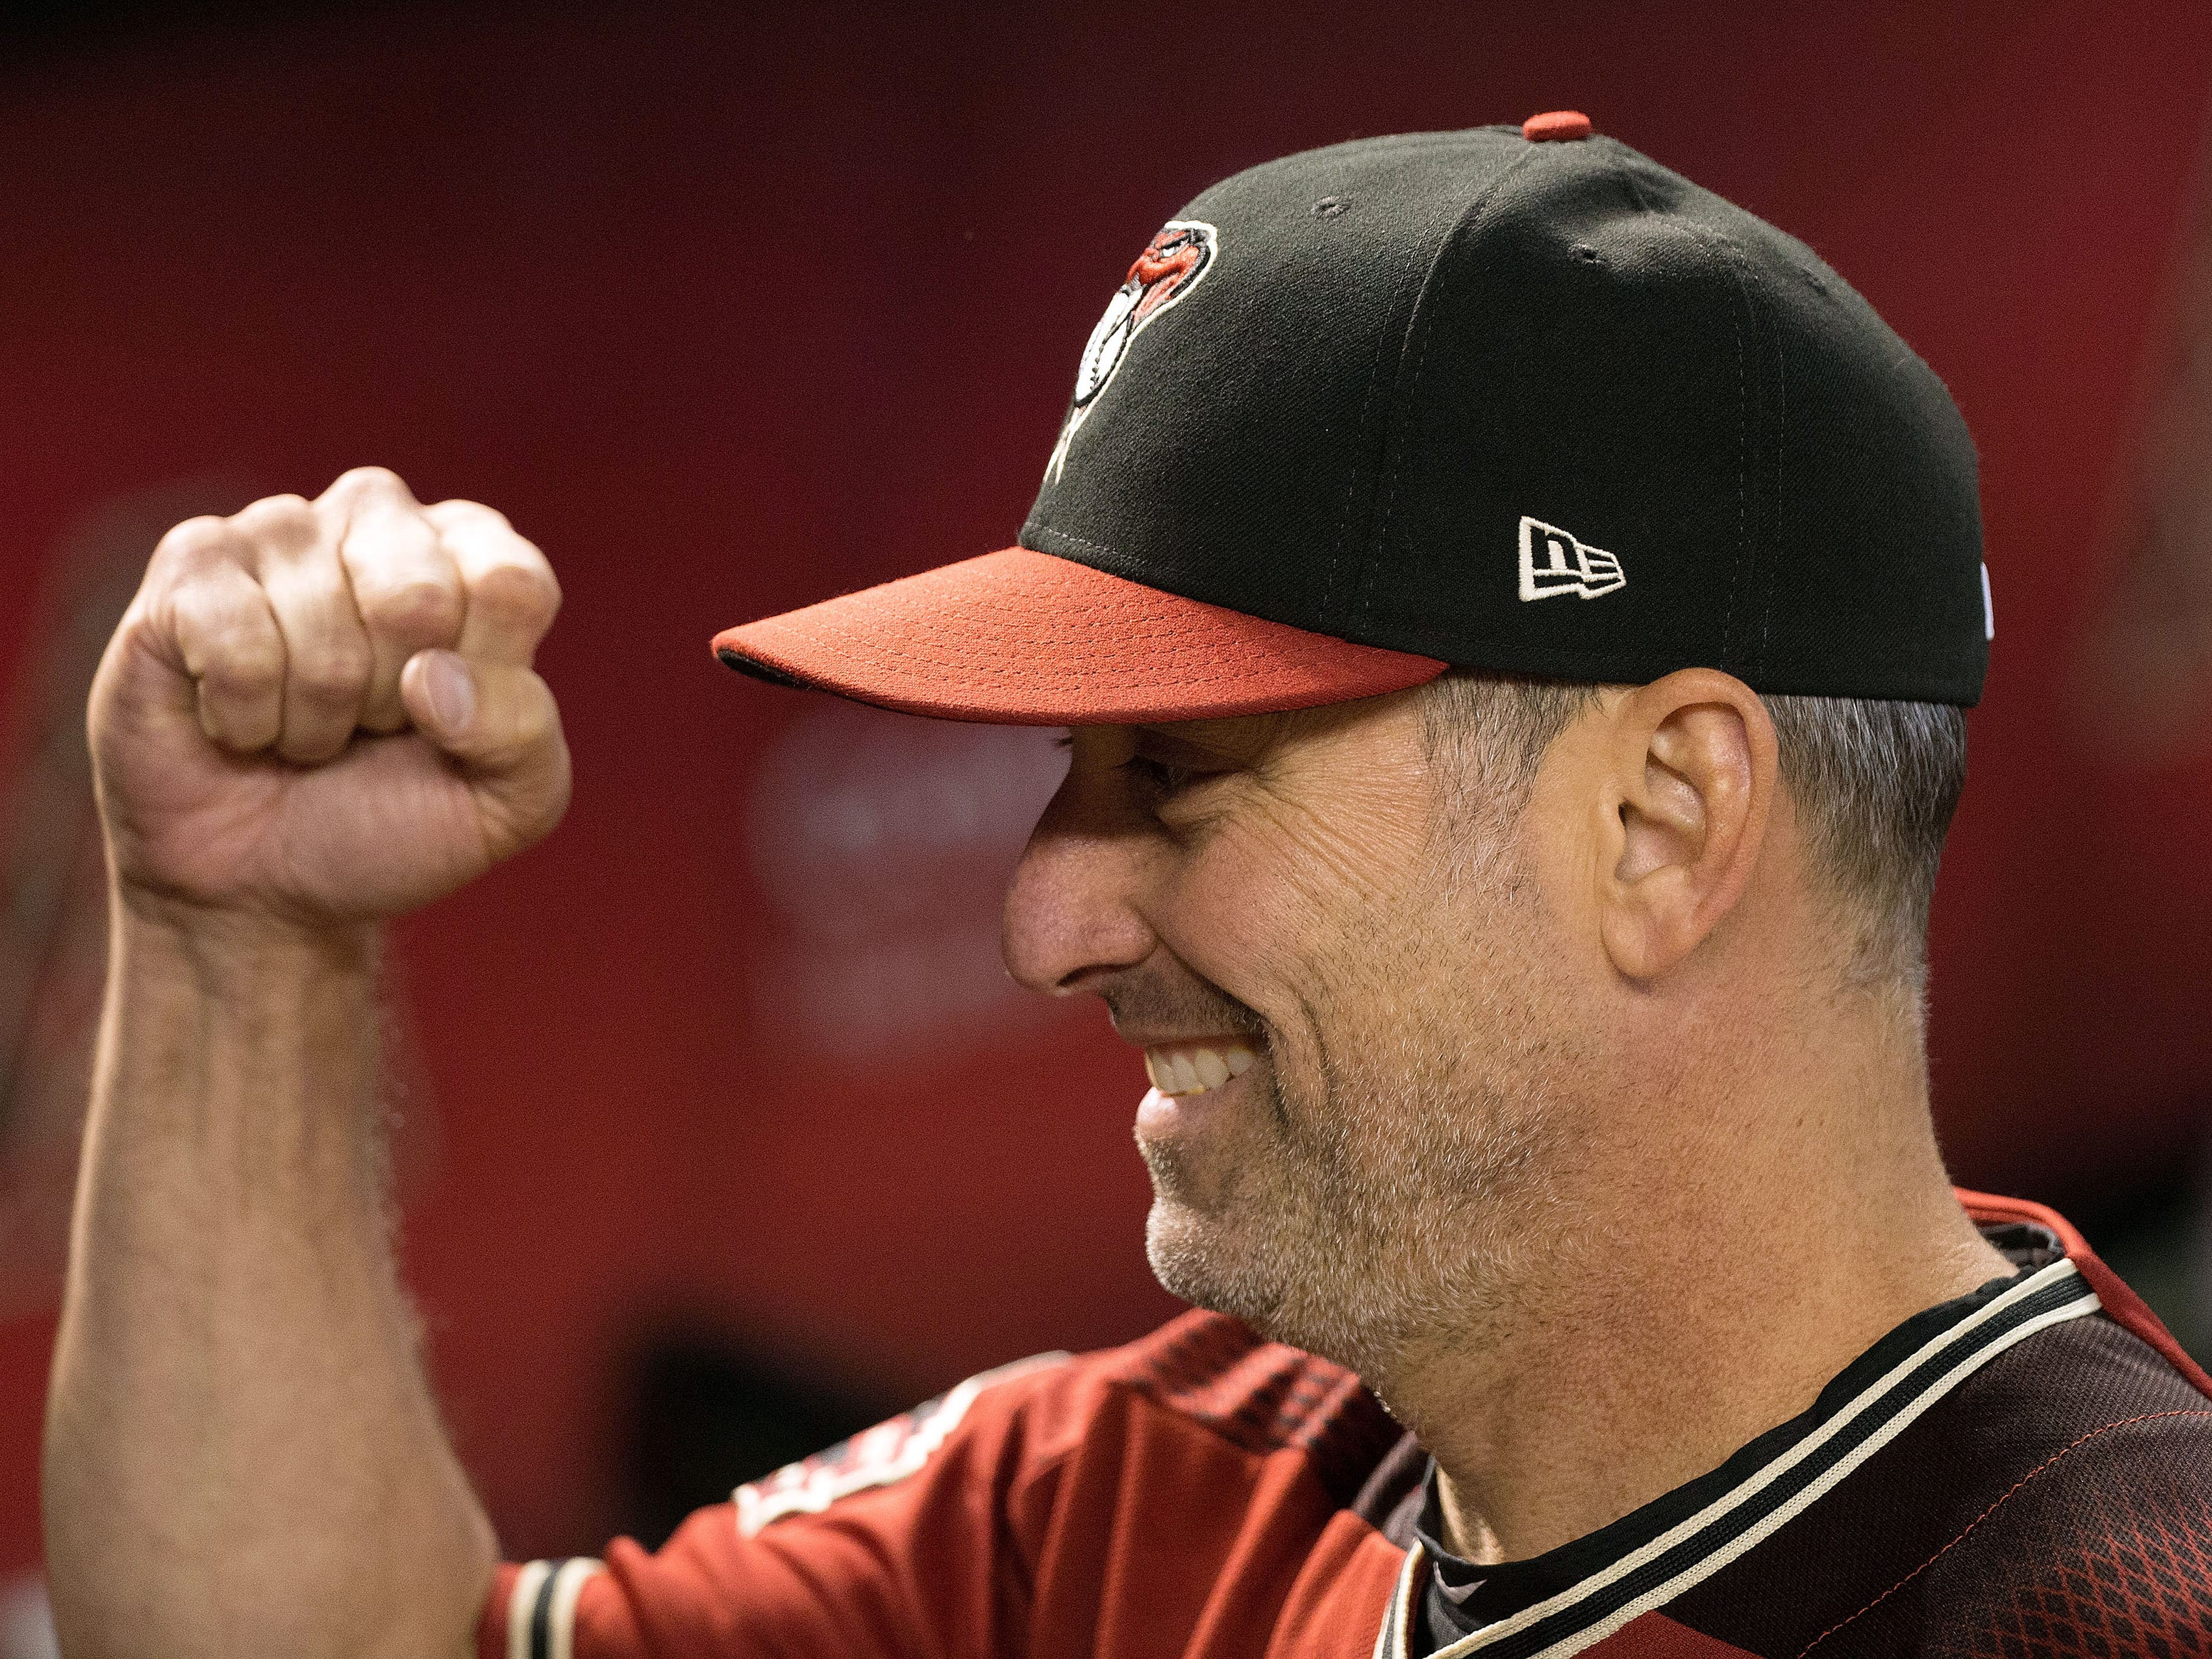 Sep 23, 2018; Phoenix, AZ, USA; Arizona Diamondbacks manager Torey Lovullo (17) celebrates with players prior to the start of the first inning against the Colorado Rockies at Chase Field. Mandatory Credit: Allan Henry-USA TODAY Sports